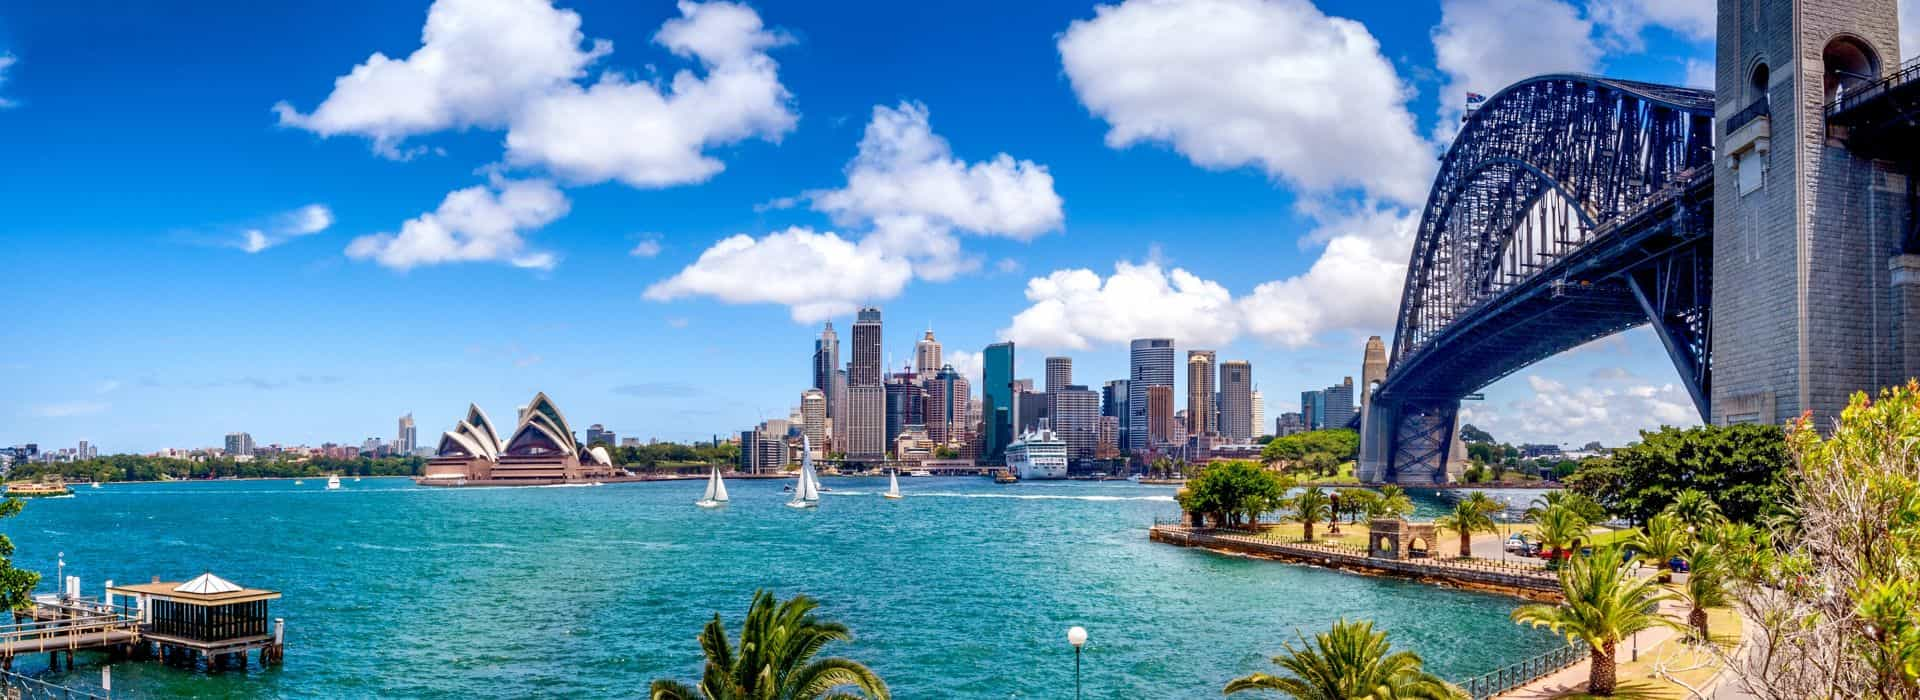 Australia Business Listing Sites 2019